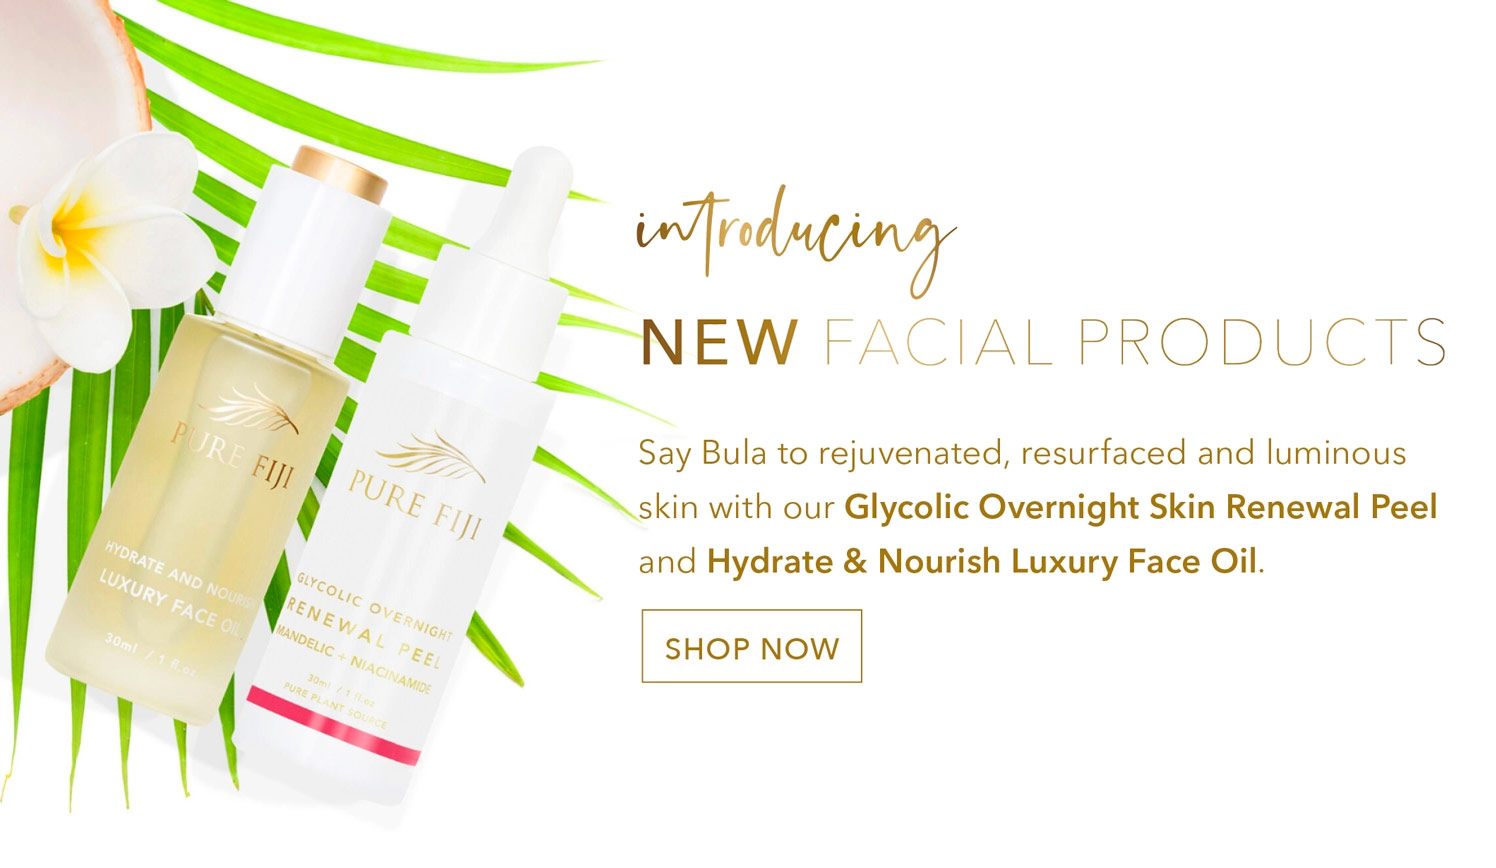 New Facial Products